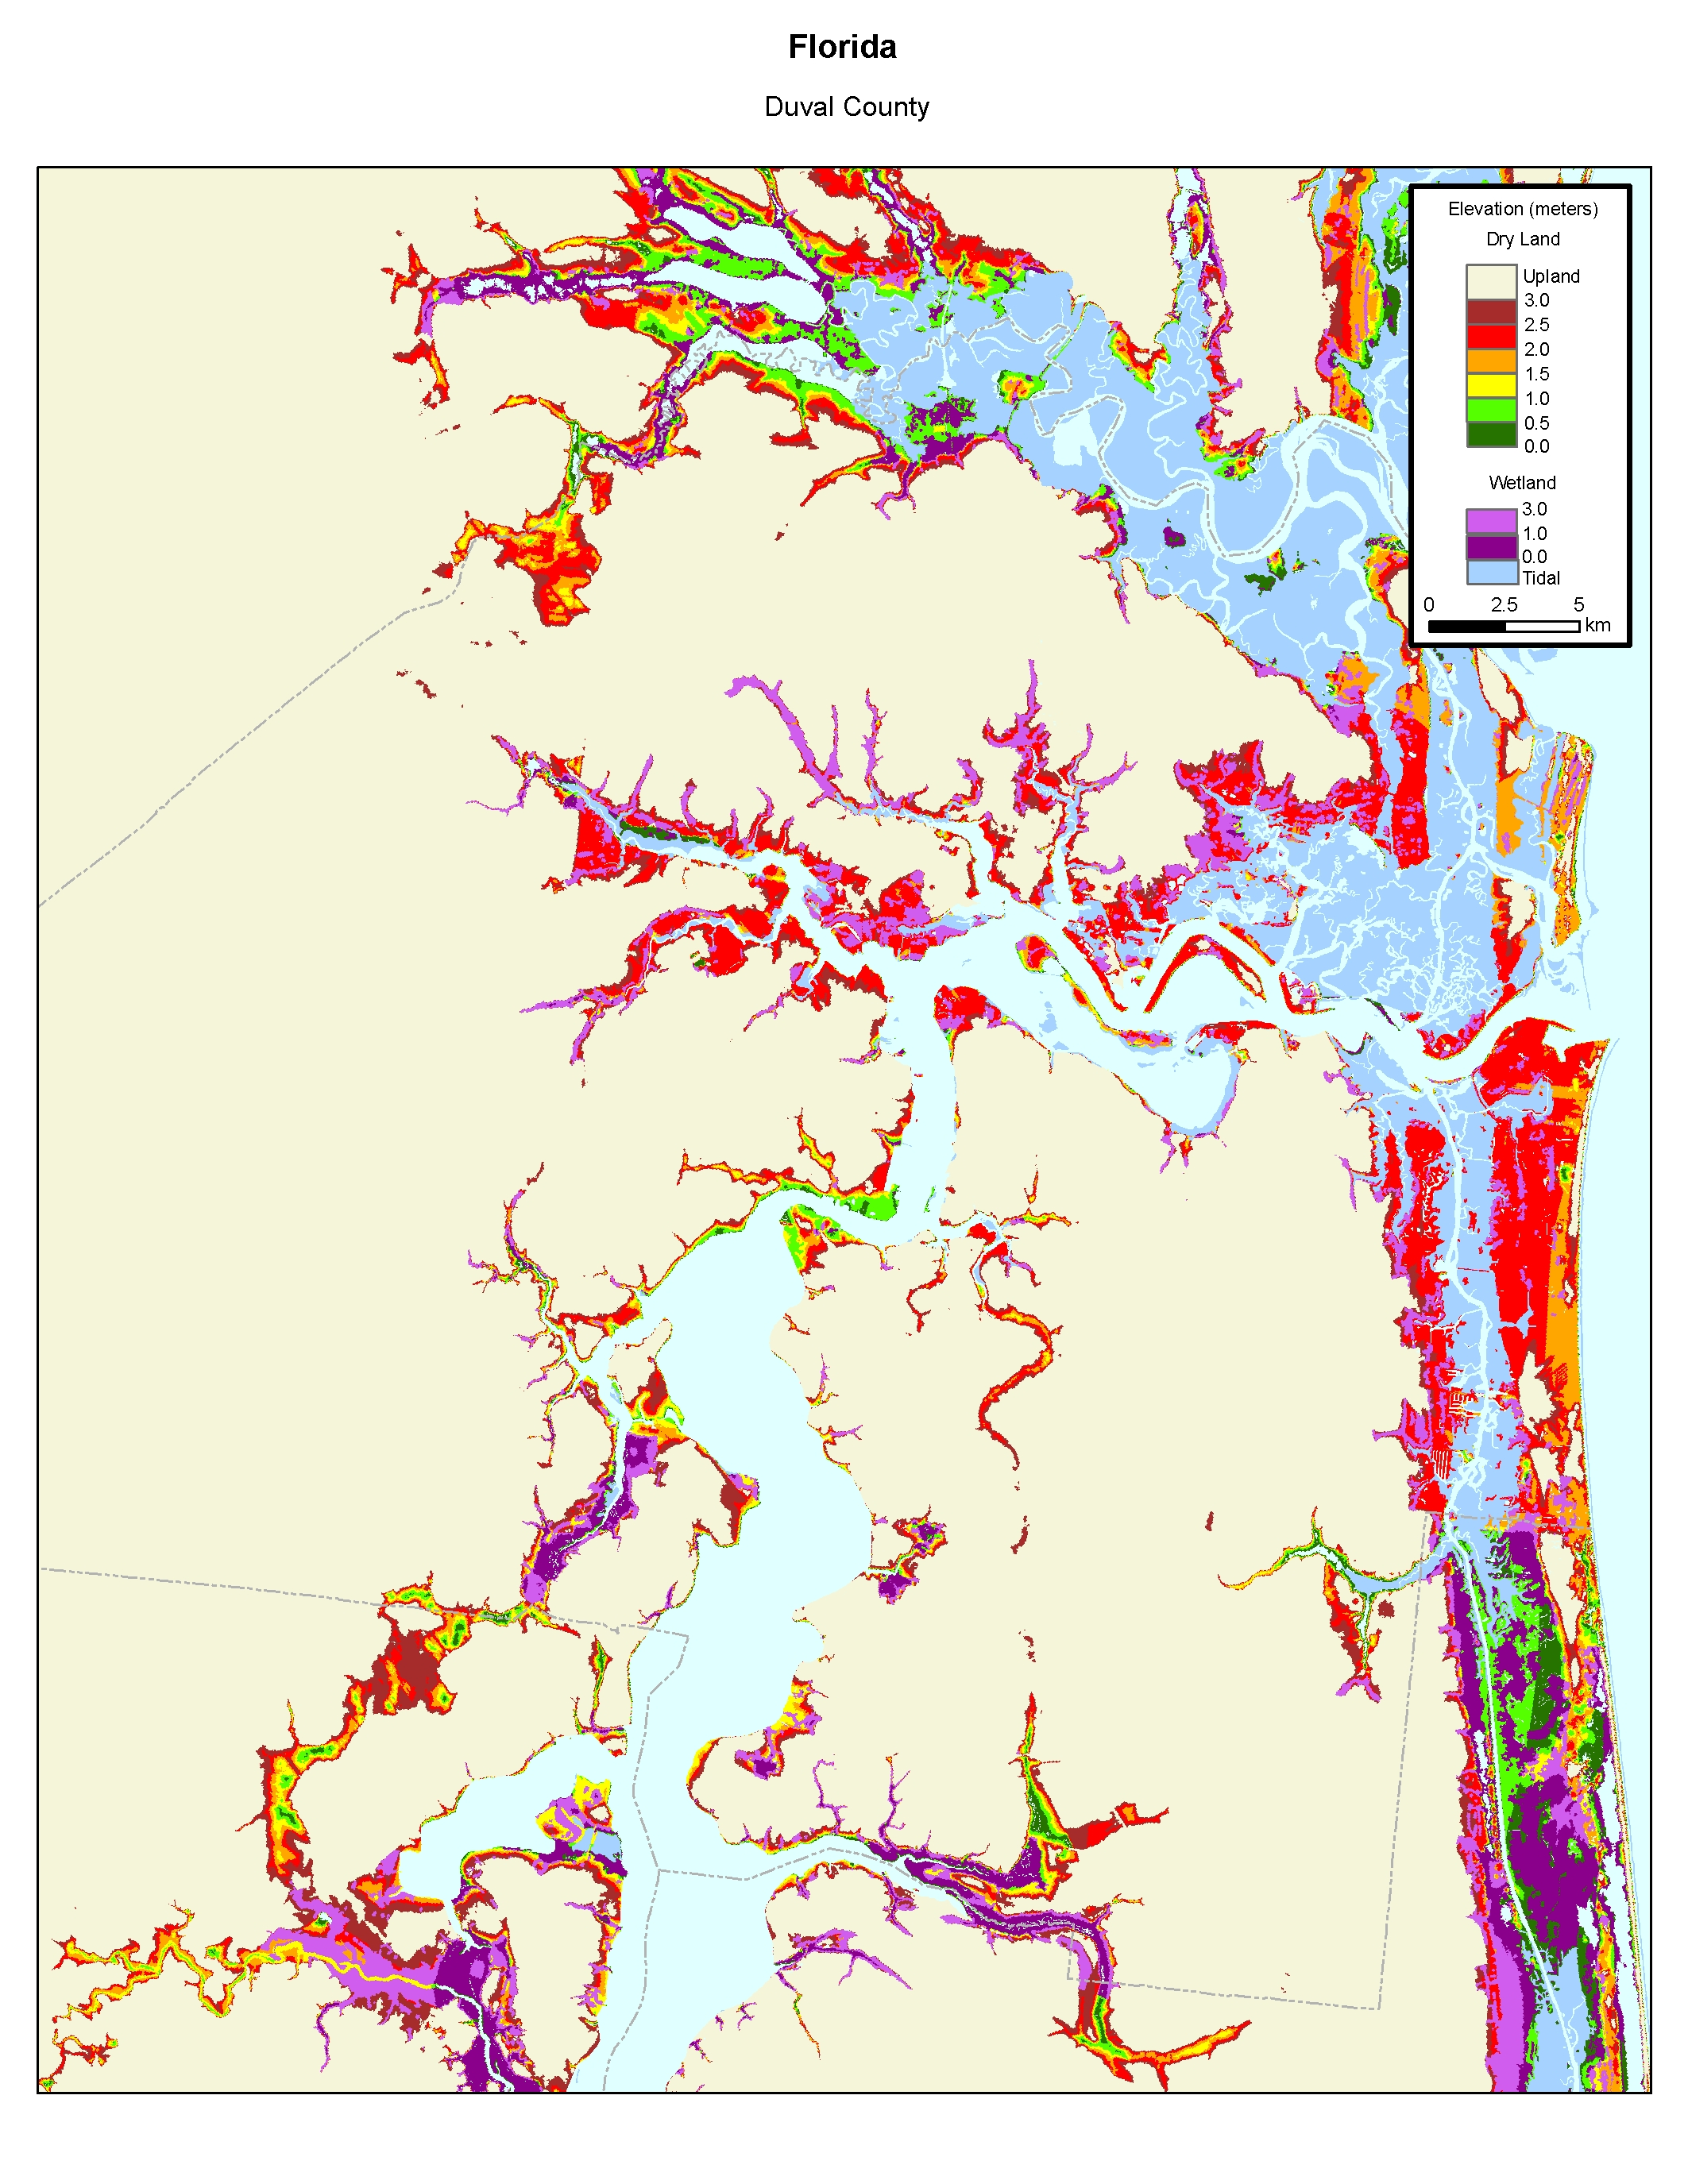 More Sea Level Rise Maps of Florida's Atlantic Coast